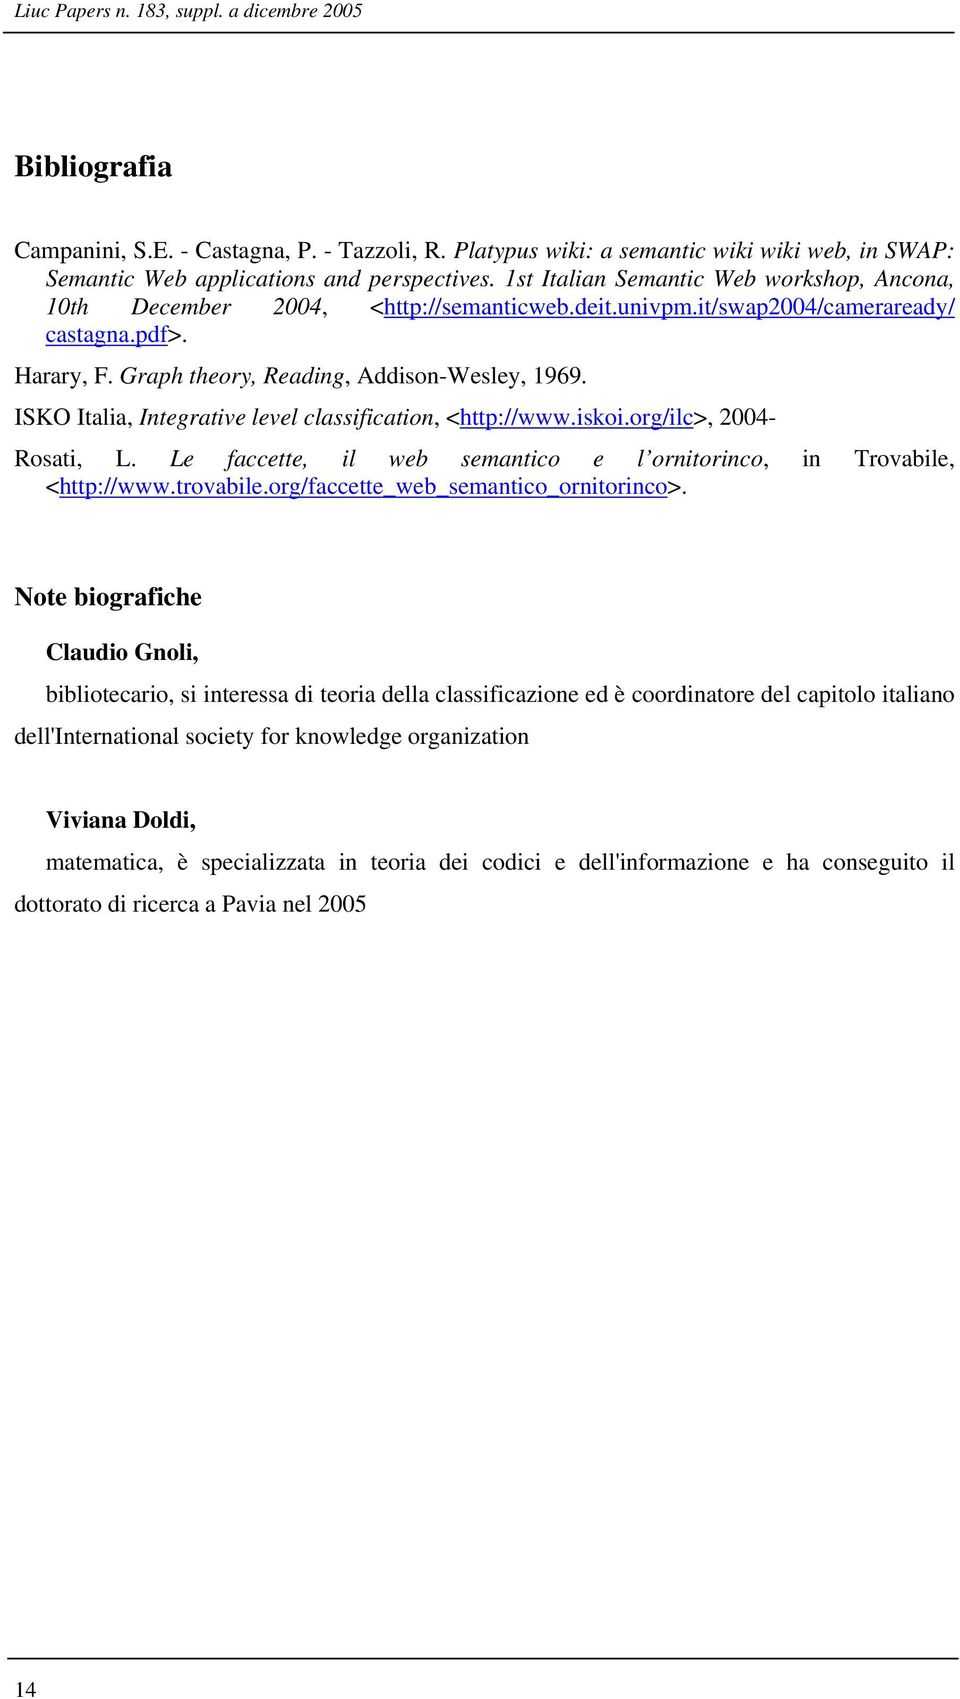 ISKO Italia, Integrative level classification, <http://www.iskoi.org/ilc>, 2004- Rosati, L. Le faccette, il web semantico e l ornitorinco, in Trovabile, <http://www.trovabile.